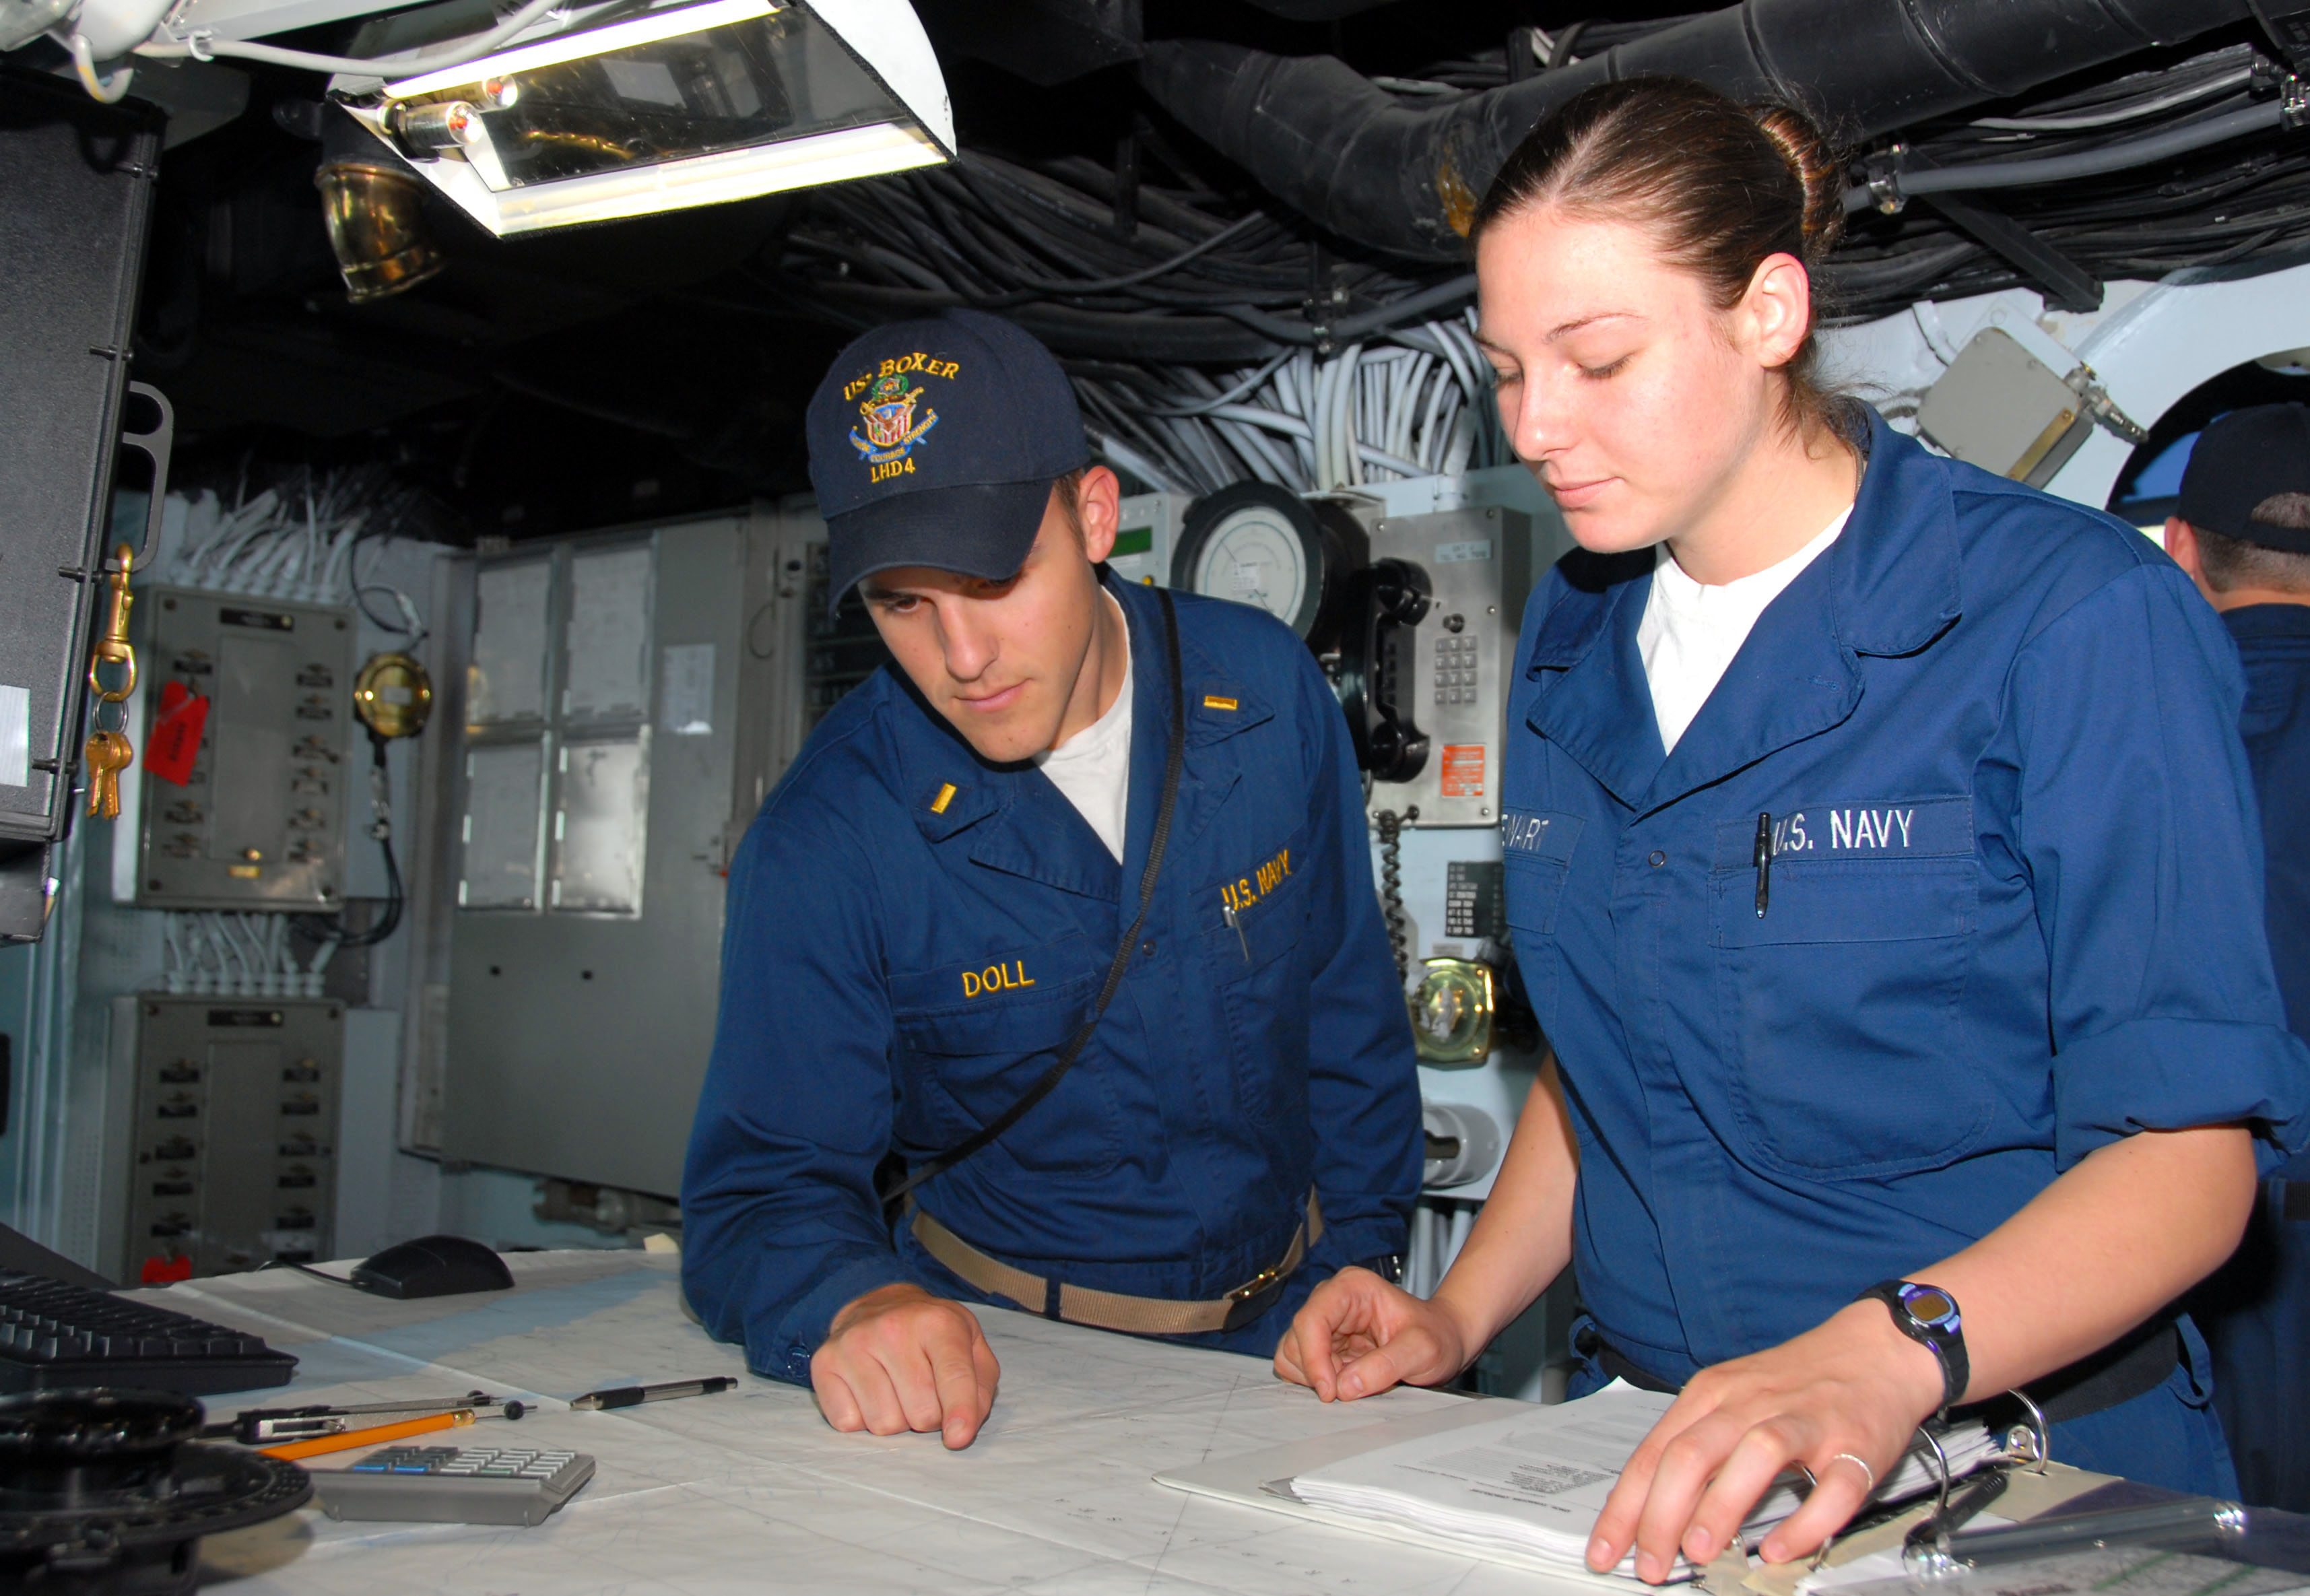 US Navy 070418-N-9689V-006 Ensign Brandon Doll, reviews the ship's position with Quartermaster Seaman Apprentice Angela Stewart